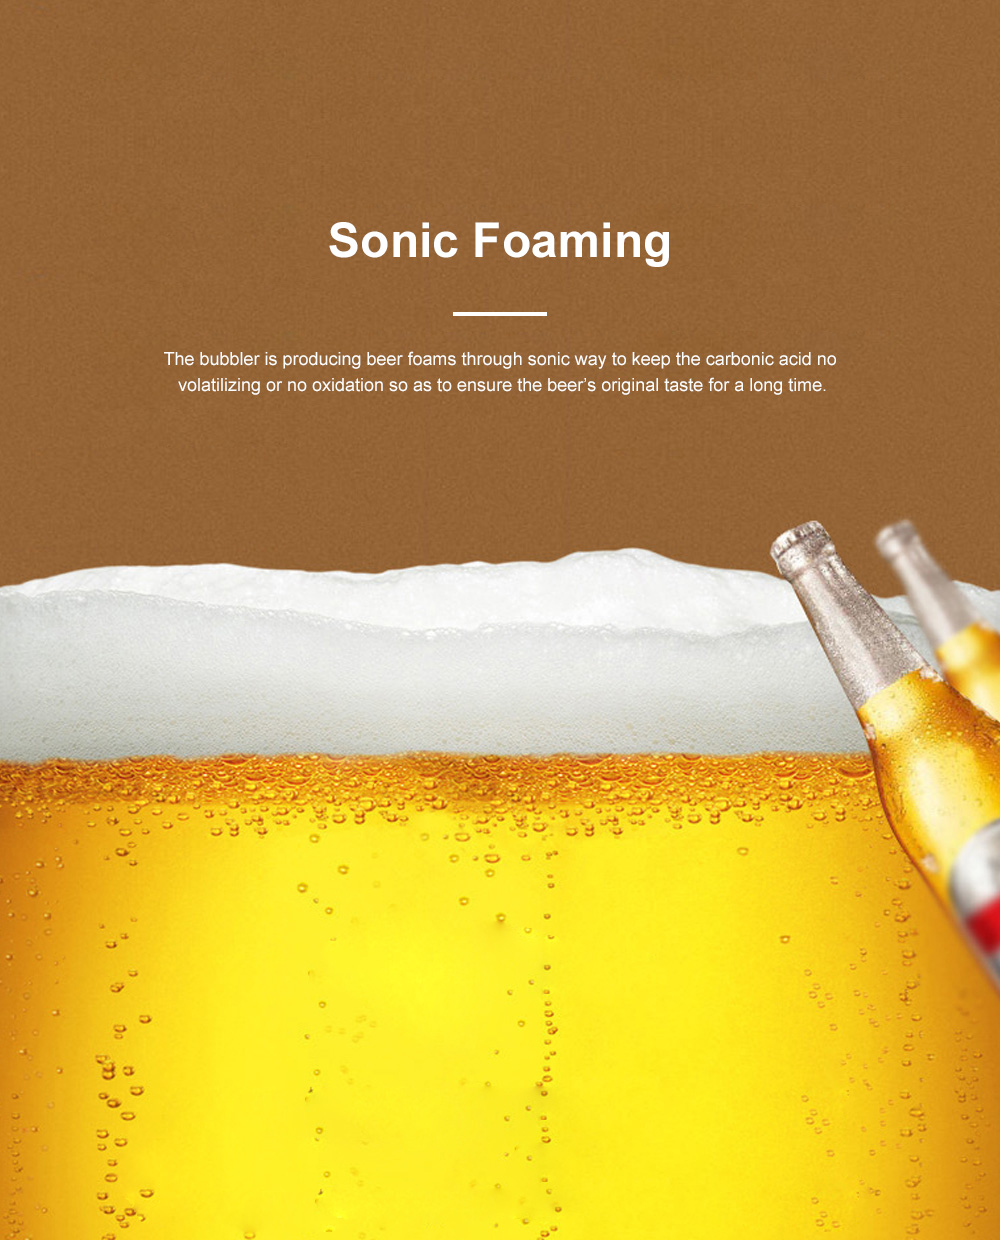 Portable Sonic Can Beer Foamer for Outdoor Party Wine Tasting Food Grade Universal Beer Bubbler Long Battery Duration Mini Size Beer Foamer 4